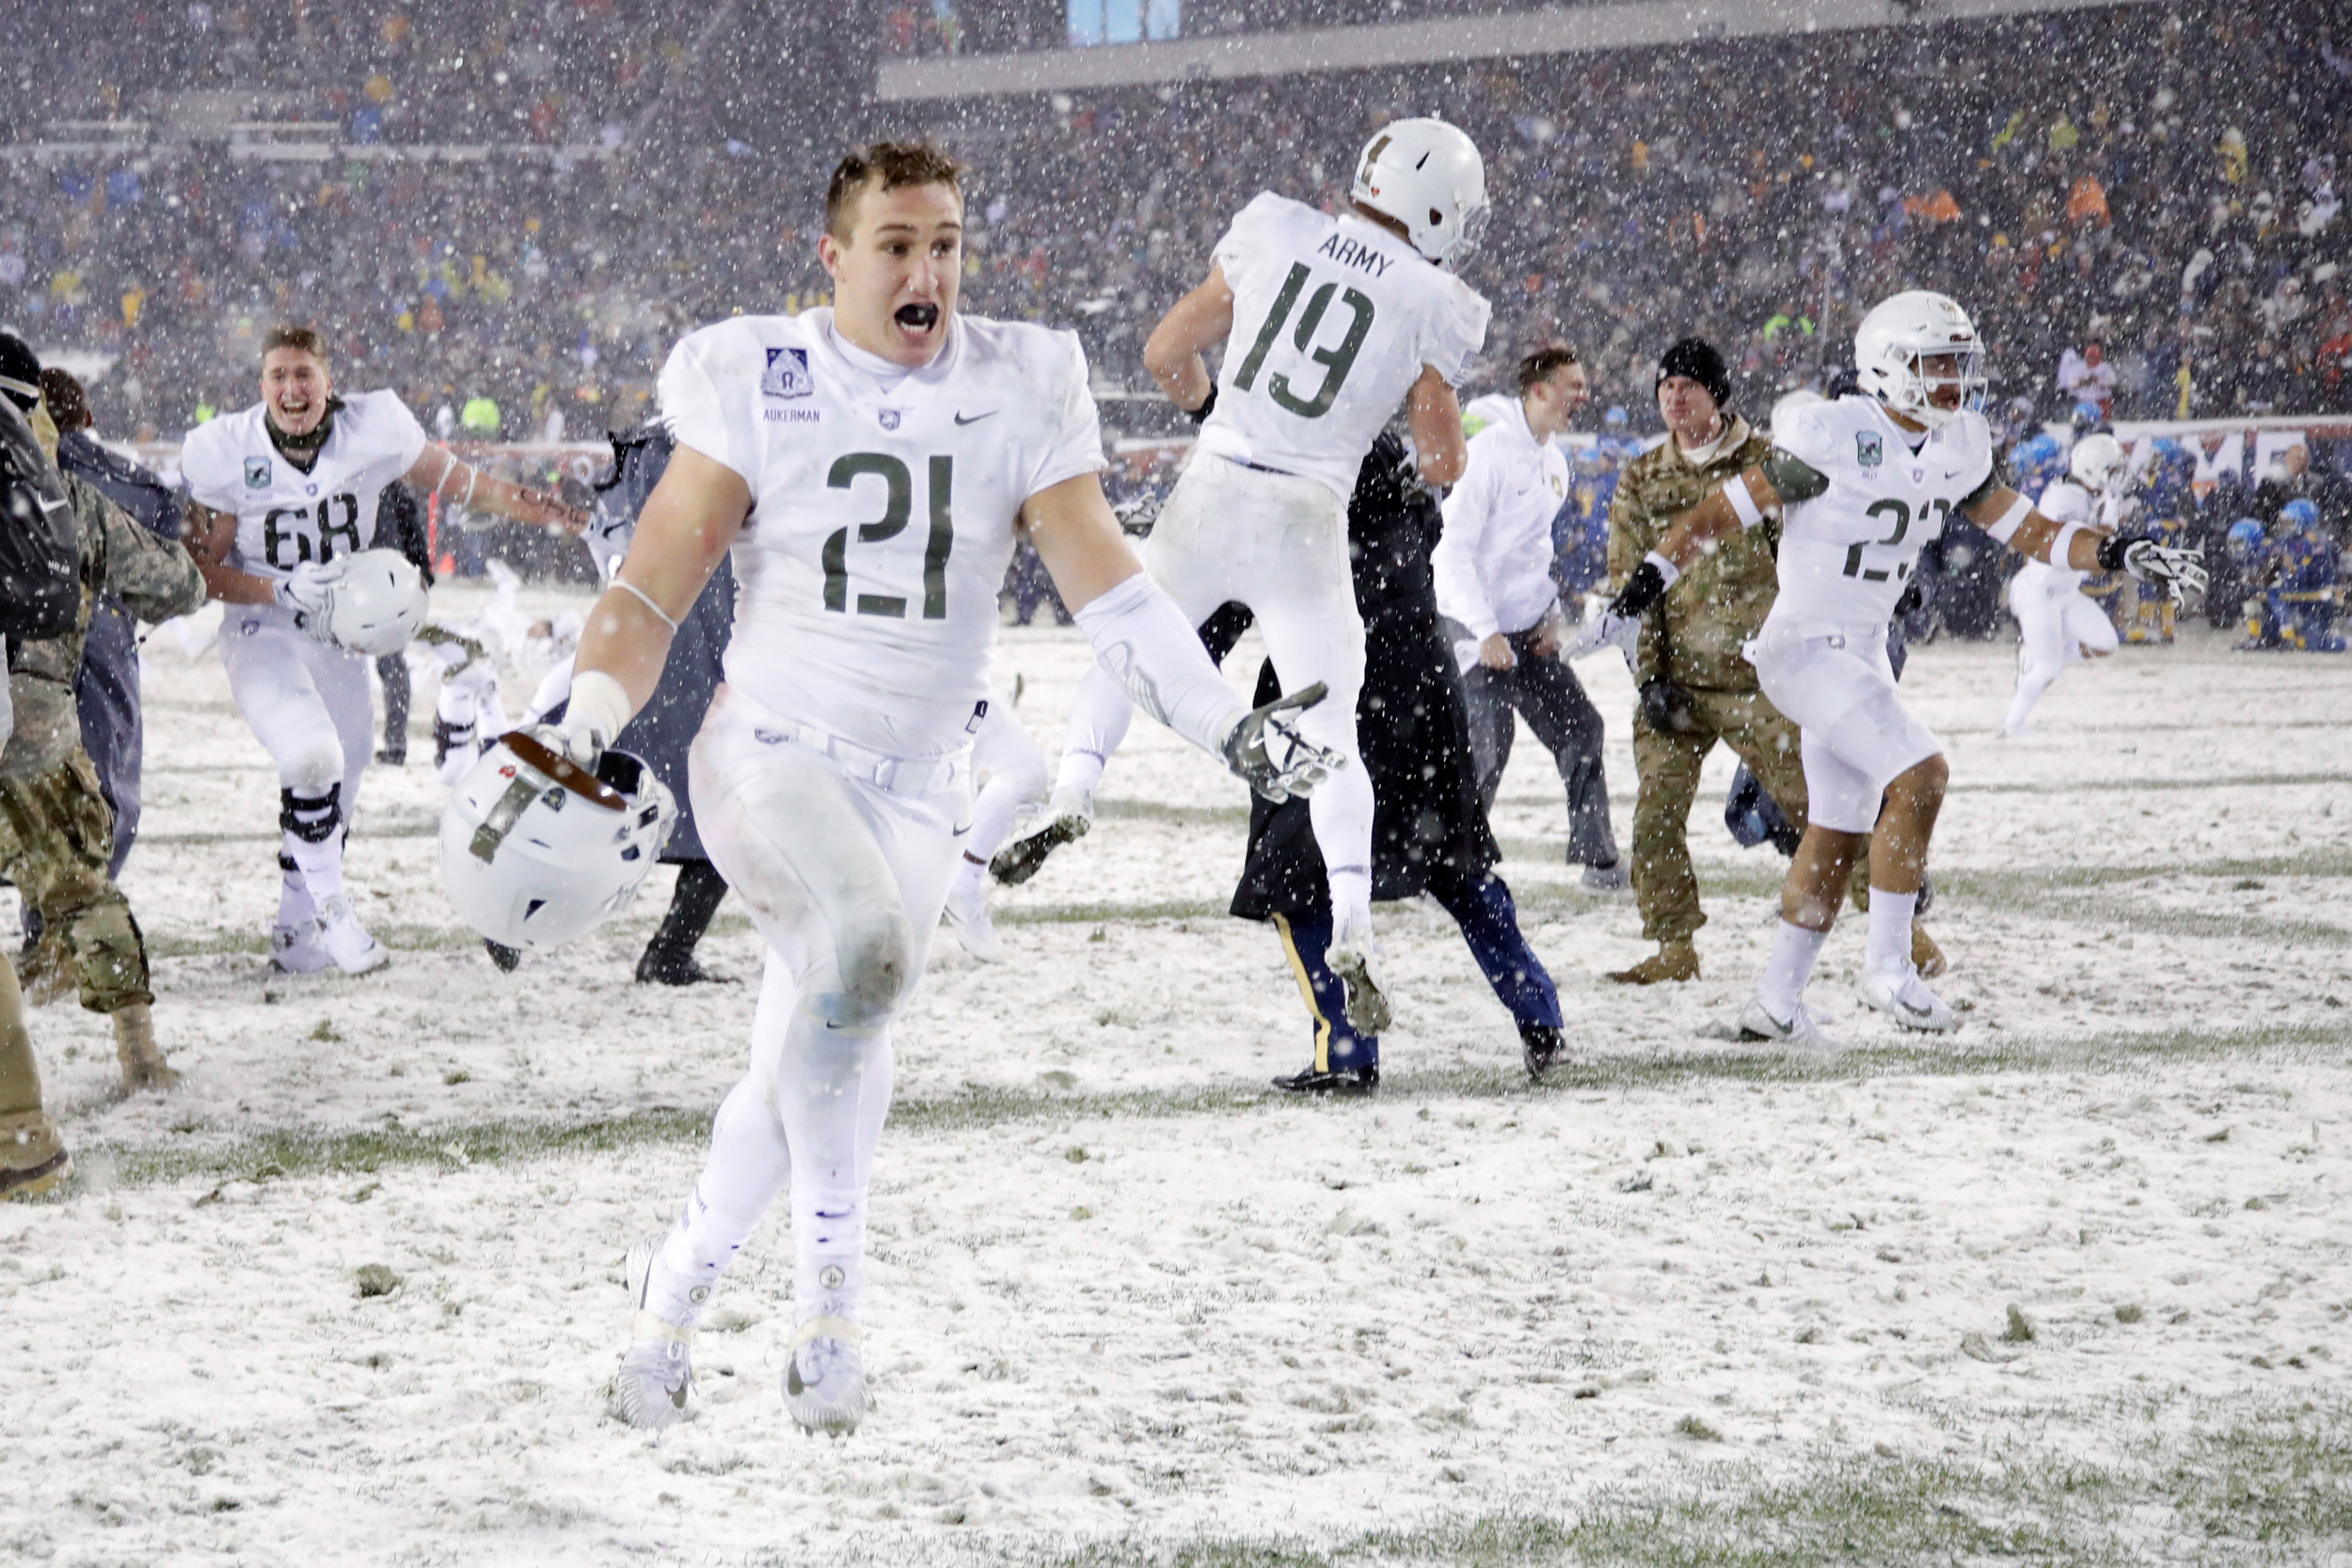 THE ASSOCIATED PRESSArmy's Alex Aukerman (21) celebrates with his teammates after a missed field goal on the game's final play gave Army a 14-13 victory over Navy in snowy Philadelphia on Saturday. Sumter resident Tom O'Hare took in his first game of the rivalry, braving the frigid weather to put a check on his bucket list.